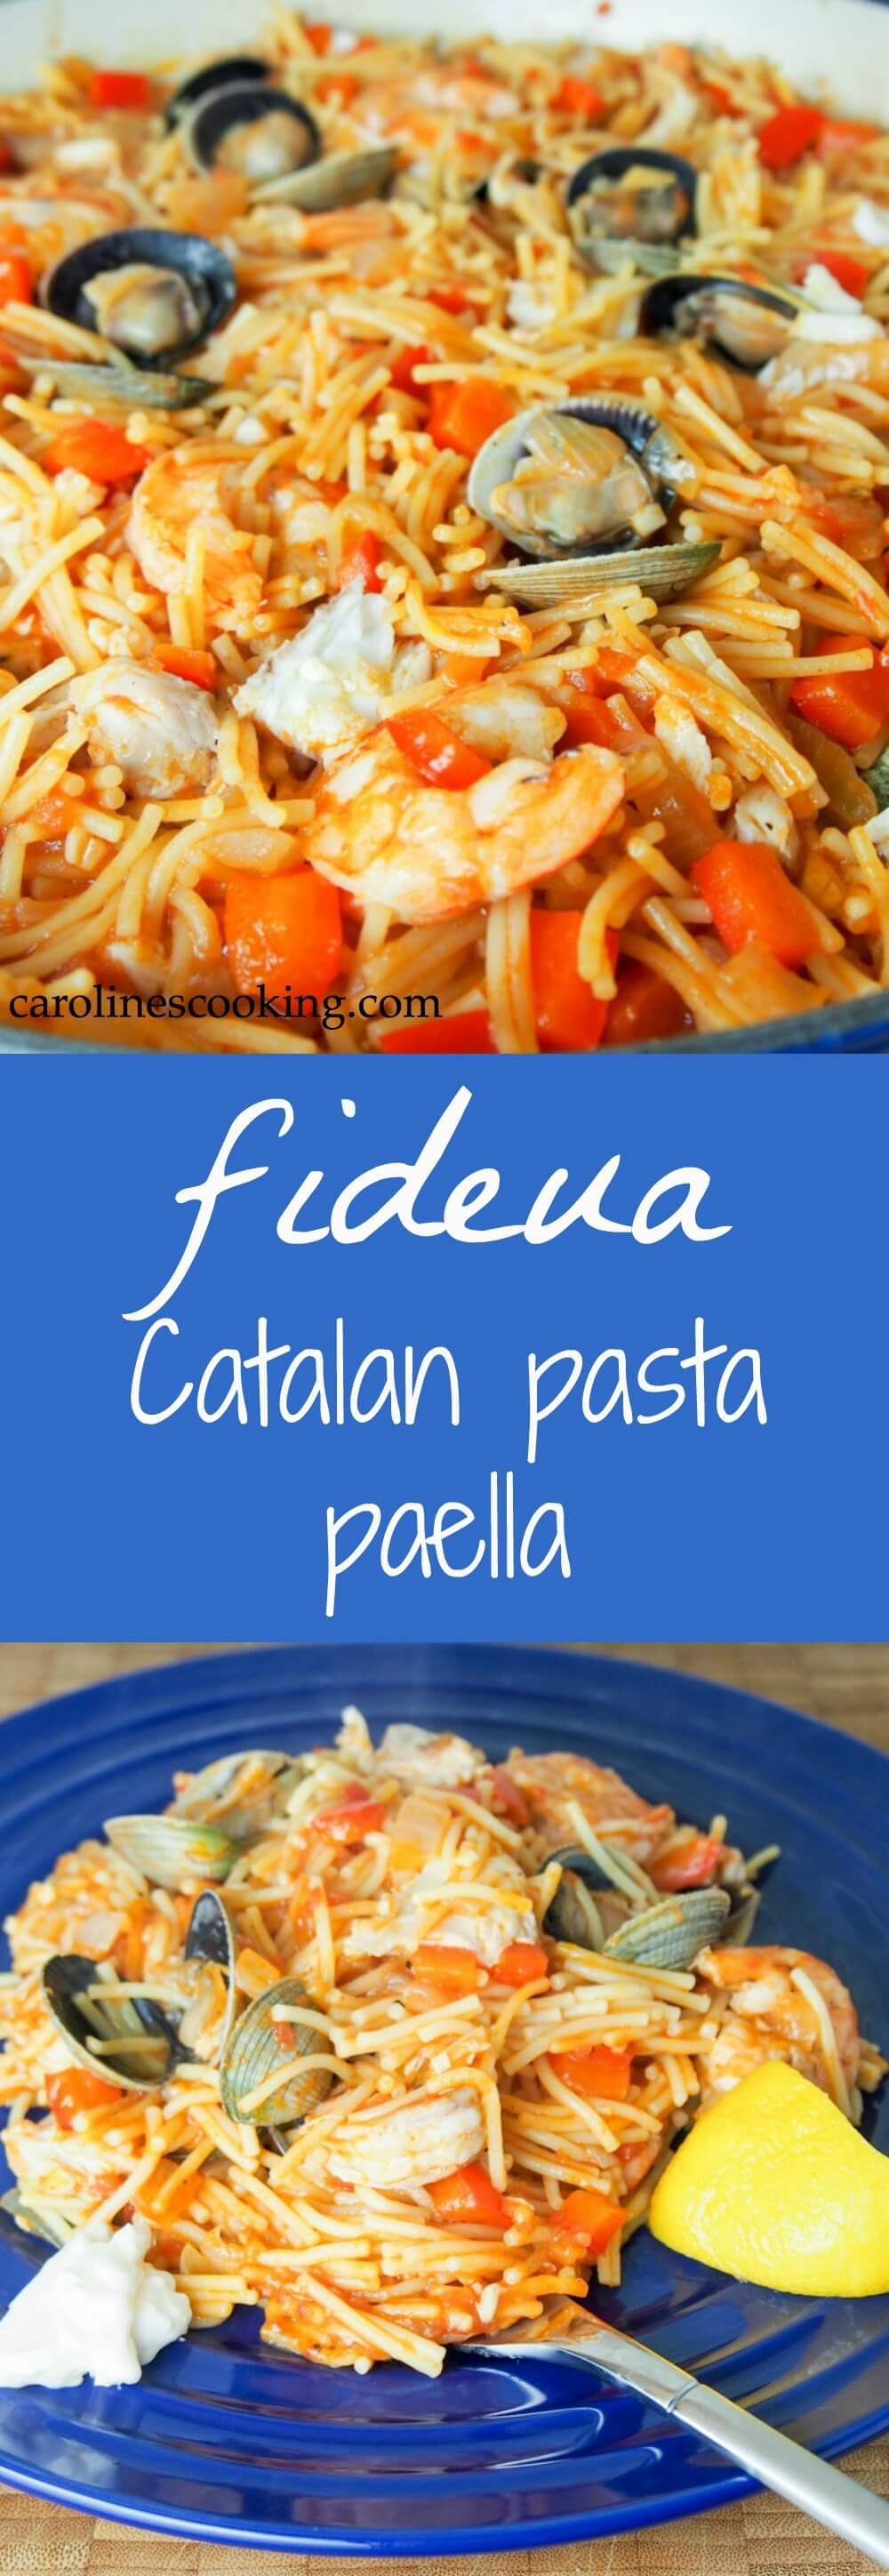 Fideua is a Catalan fish and seafood paella made with short pasta and a tomato-pepper and stock sauce base. Deliciously comforting.